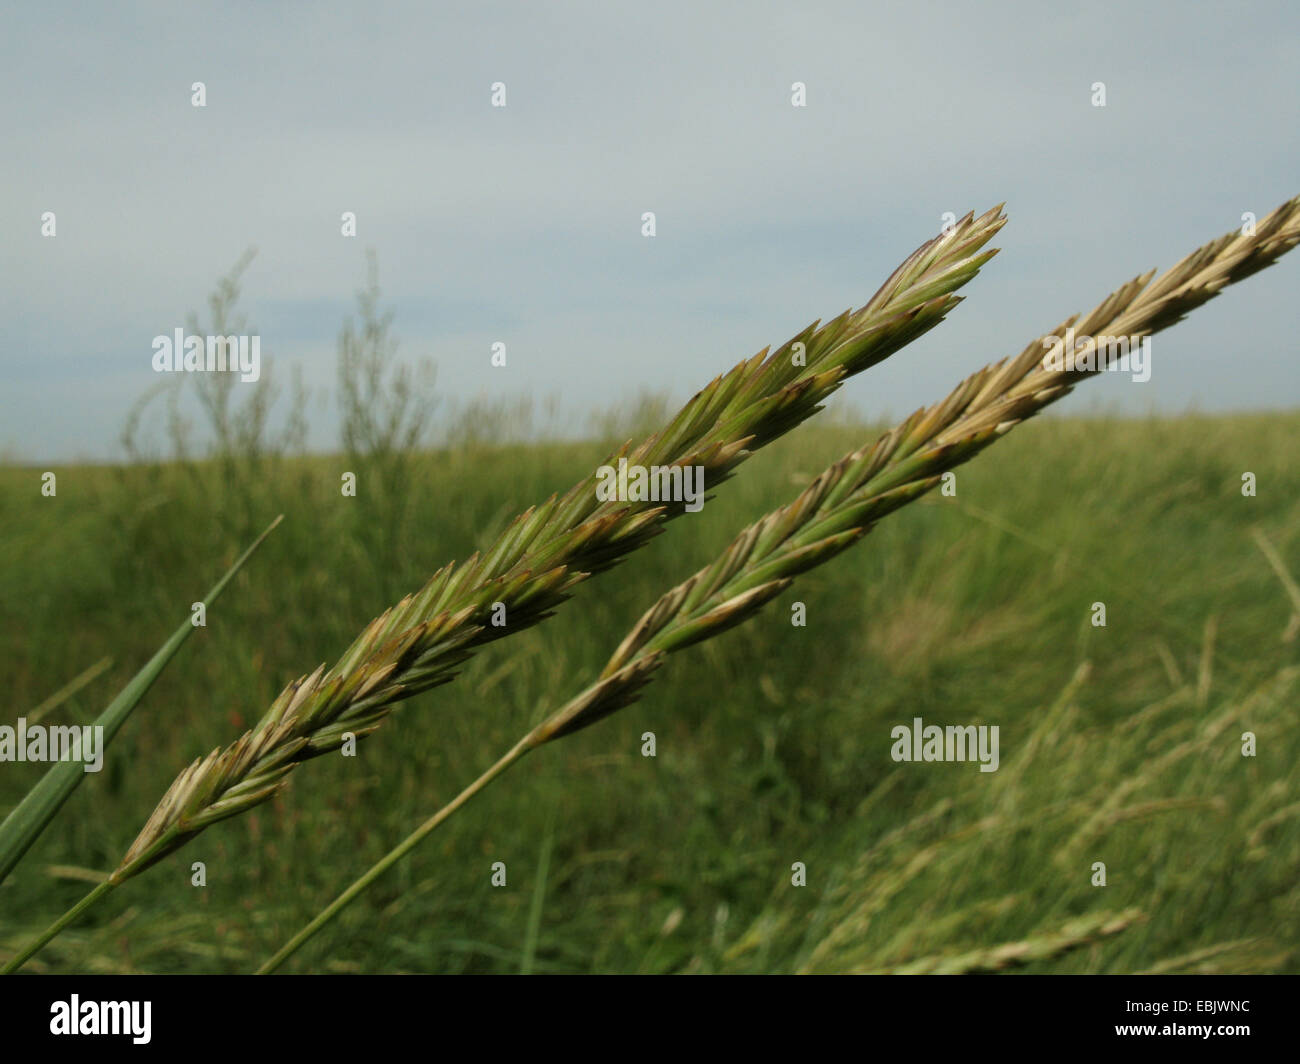 Grass Couch Couch Grass Stock Photos Couch Grass Stock Images Alamy